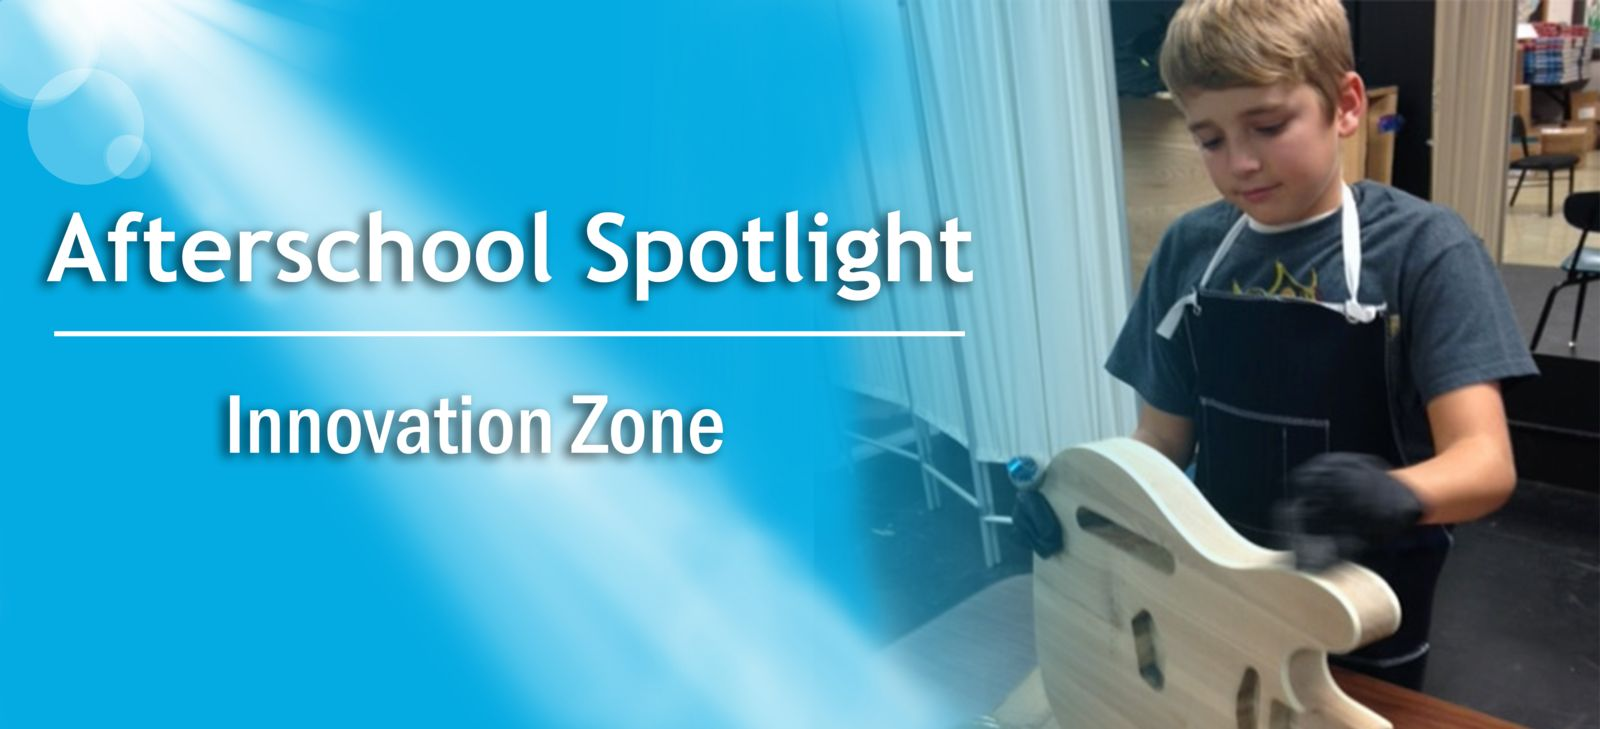 Afterschool Spotlight: Innovation Zone